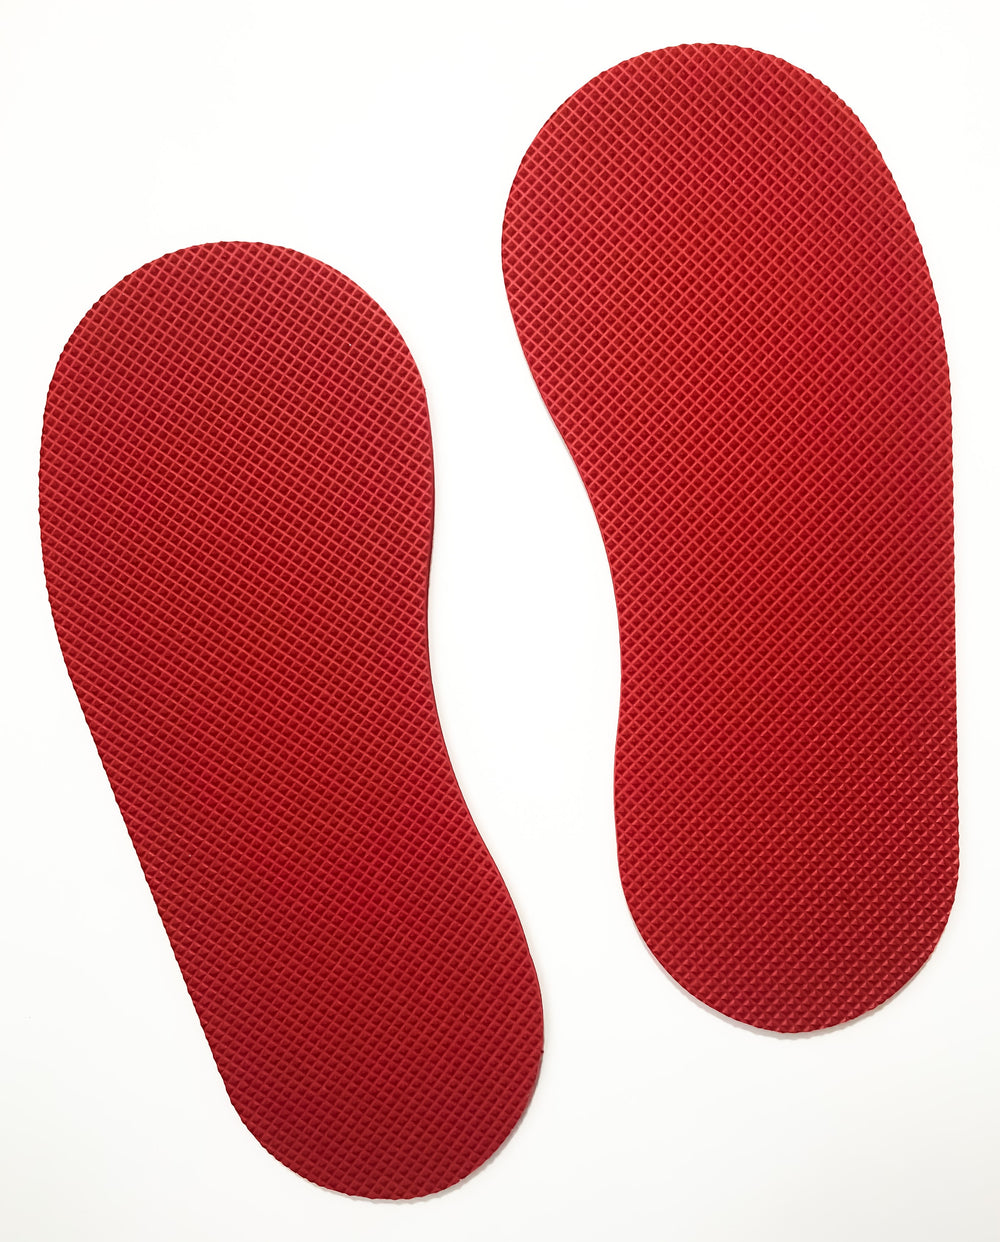 Set of 4  Colored Textured Footpads (Green, Yellow, Red, and Blue)